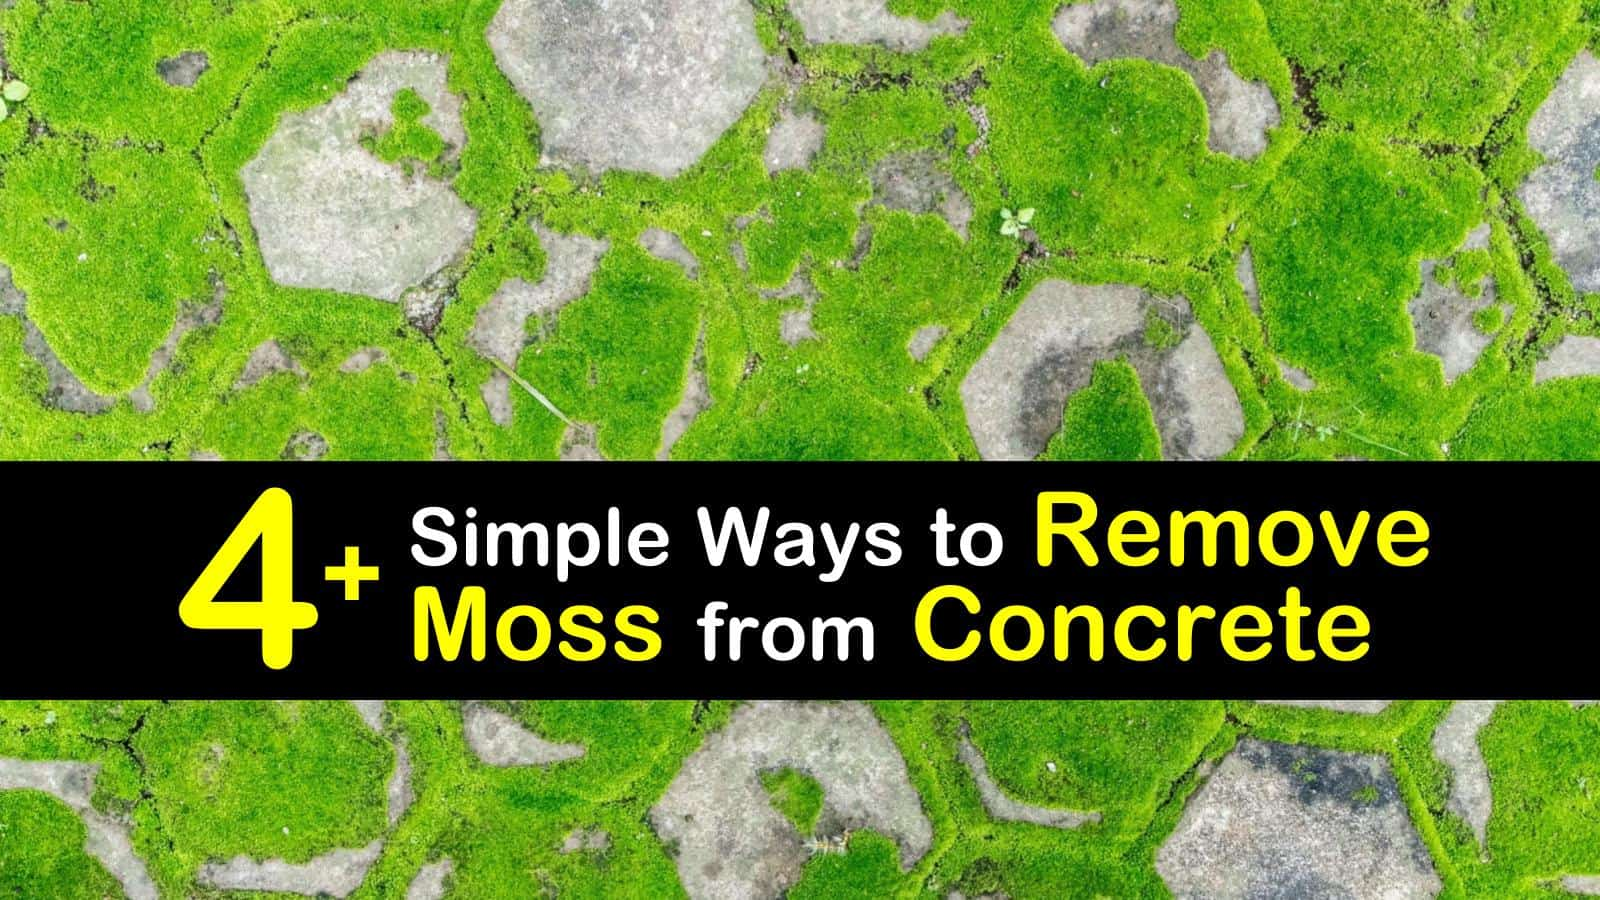 4 simple ways to remove moss from concrete